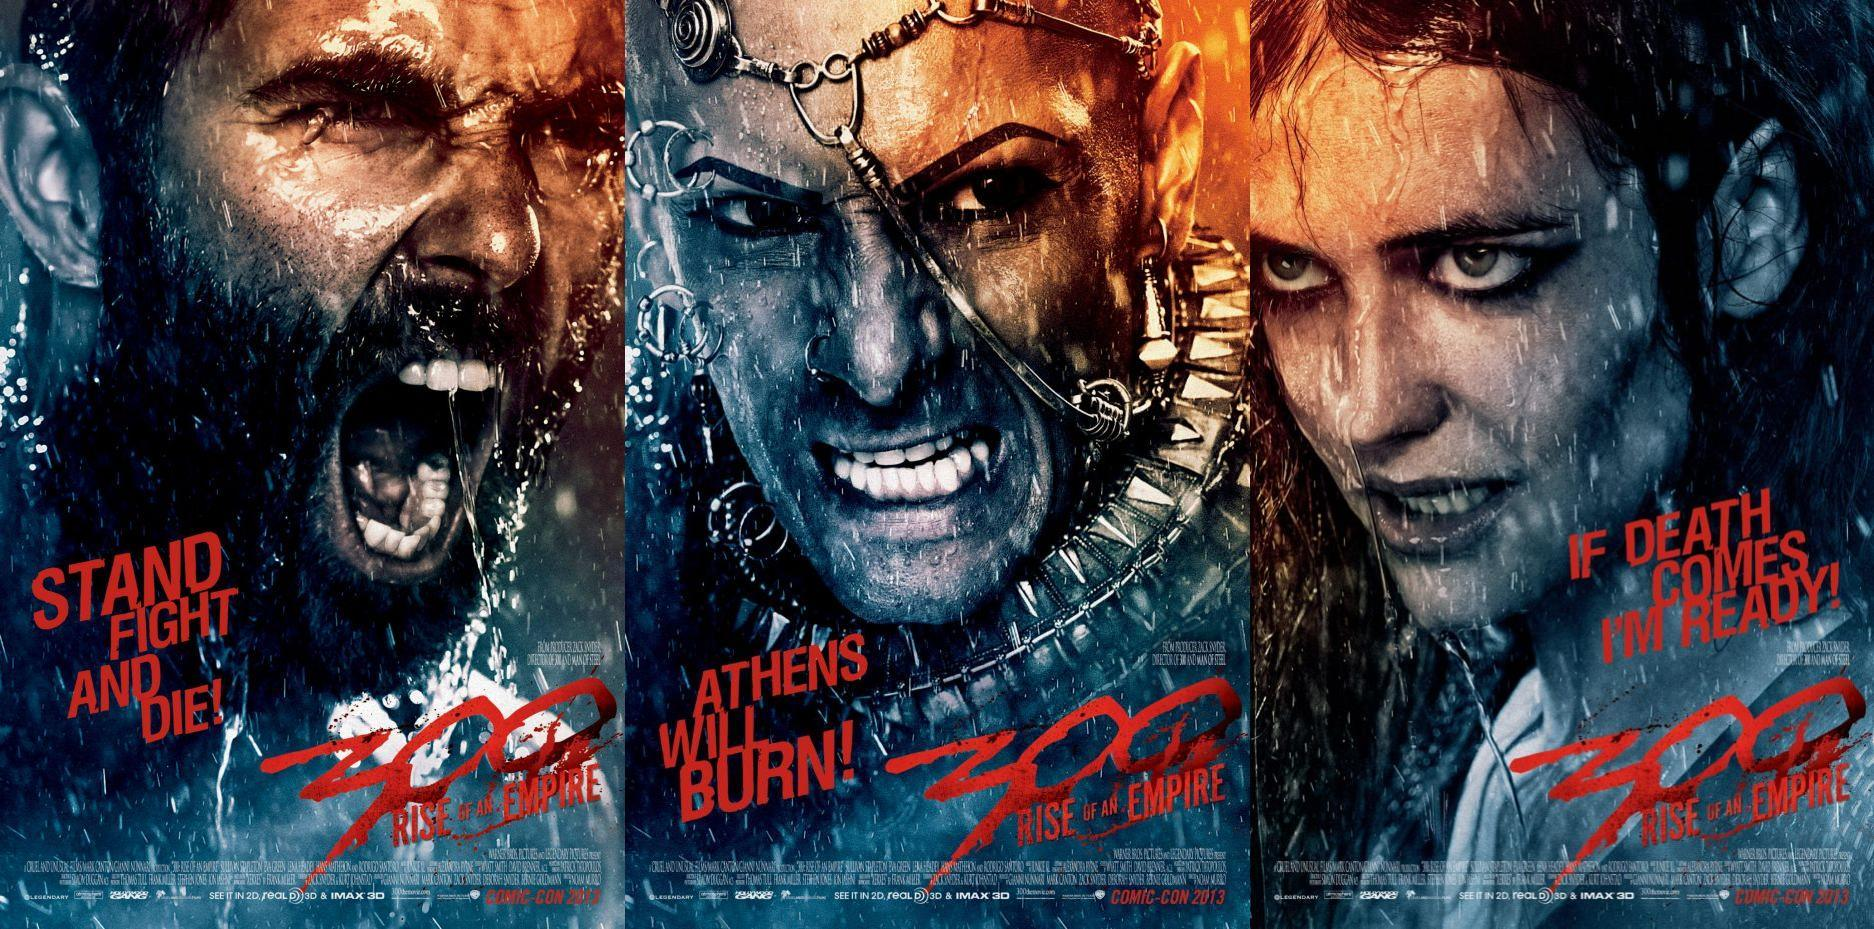 300 the resurgence movie wallpapers 30 wallpaper Collection 1874x929